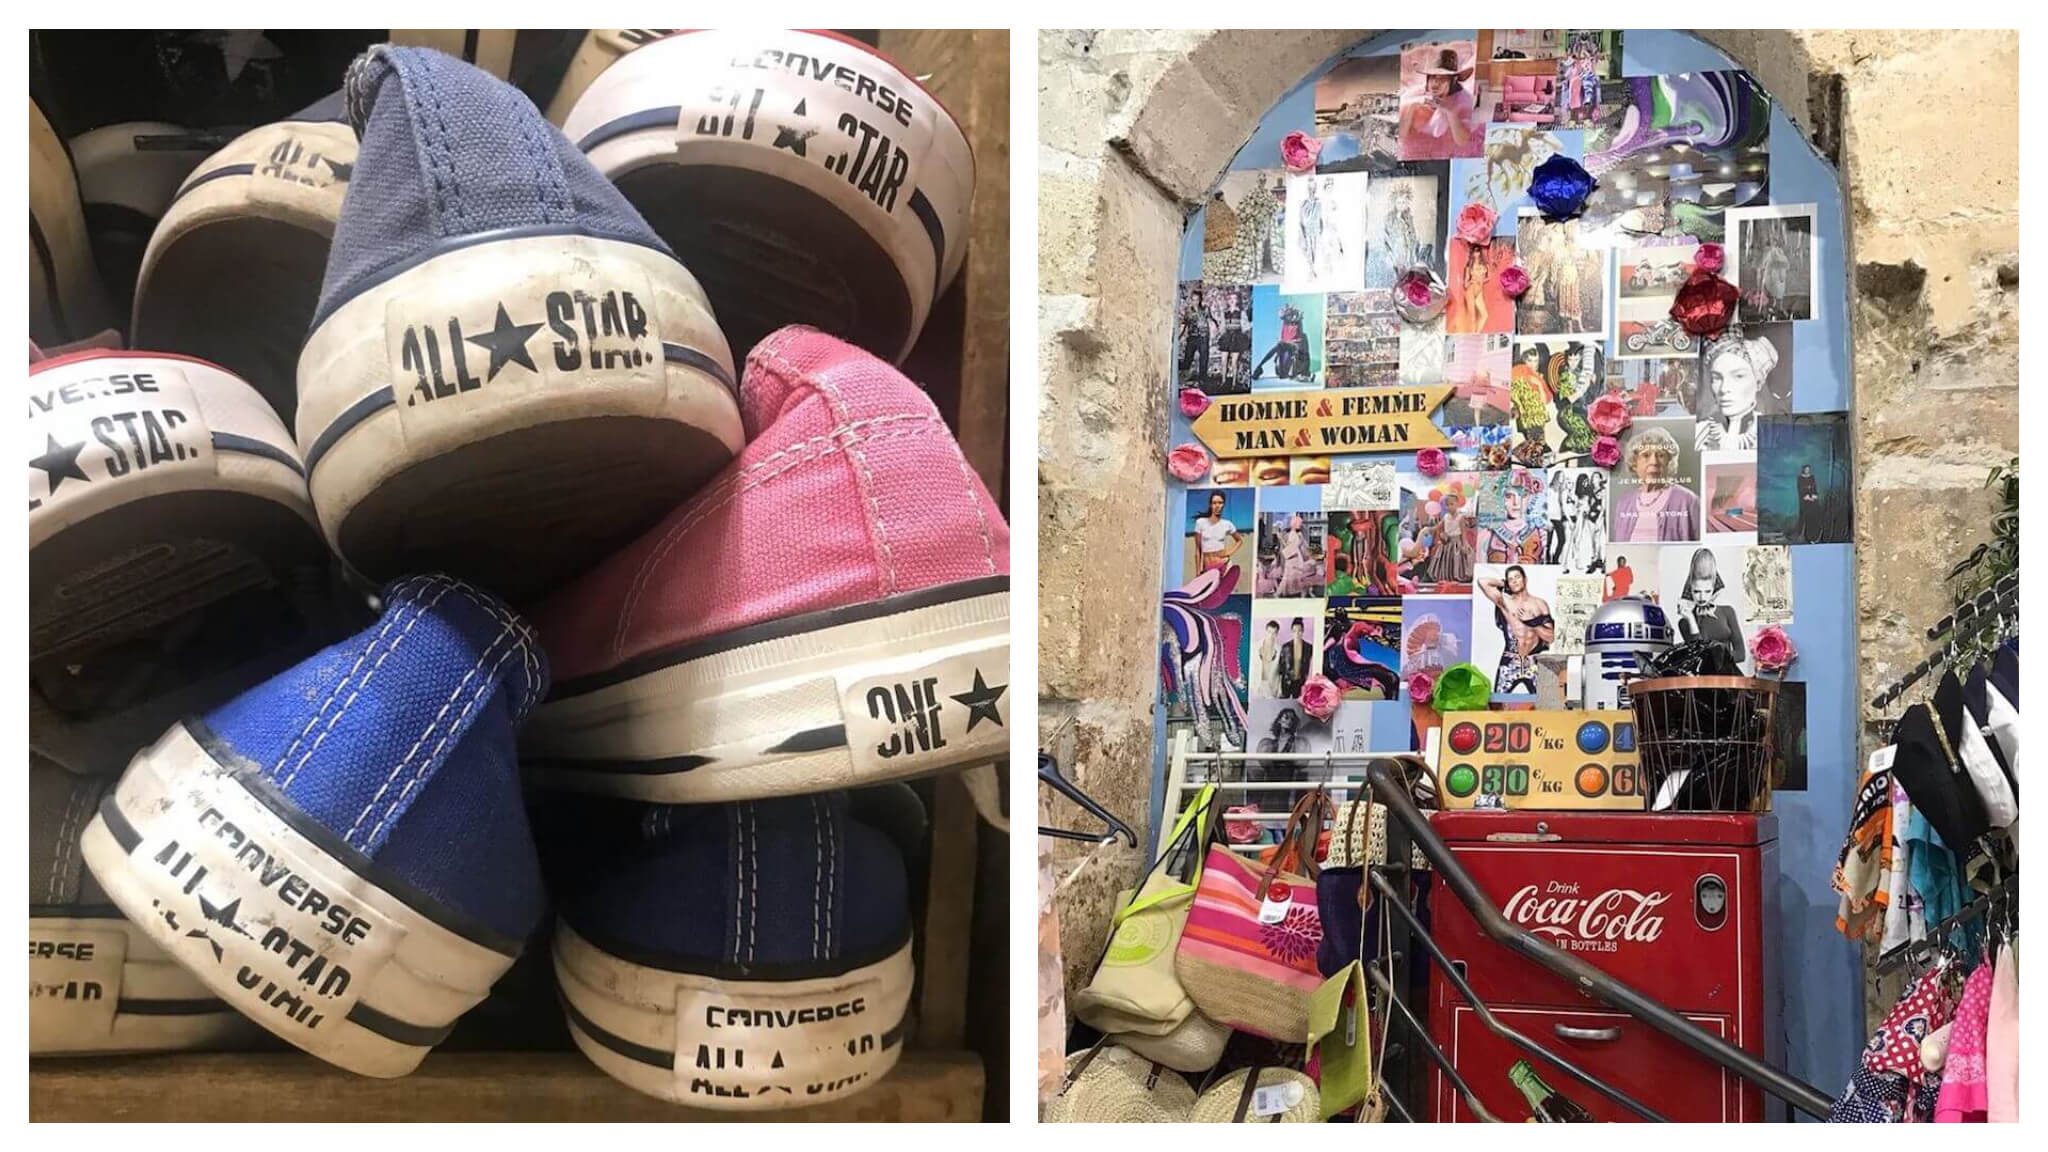 Left: eight Converse sneakers stacked on top of one another. The Converse All Star logo is visible. Right: Interior of Kilo Shop with a collage of several photos, several hats and scarves to the right, a red Coca Cola fridge, and several handbags to the left.